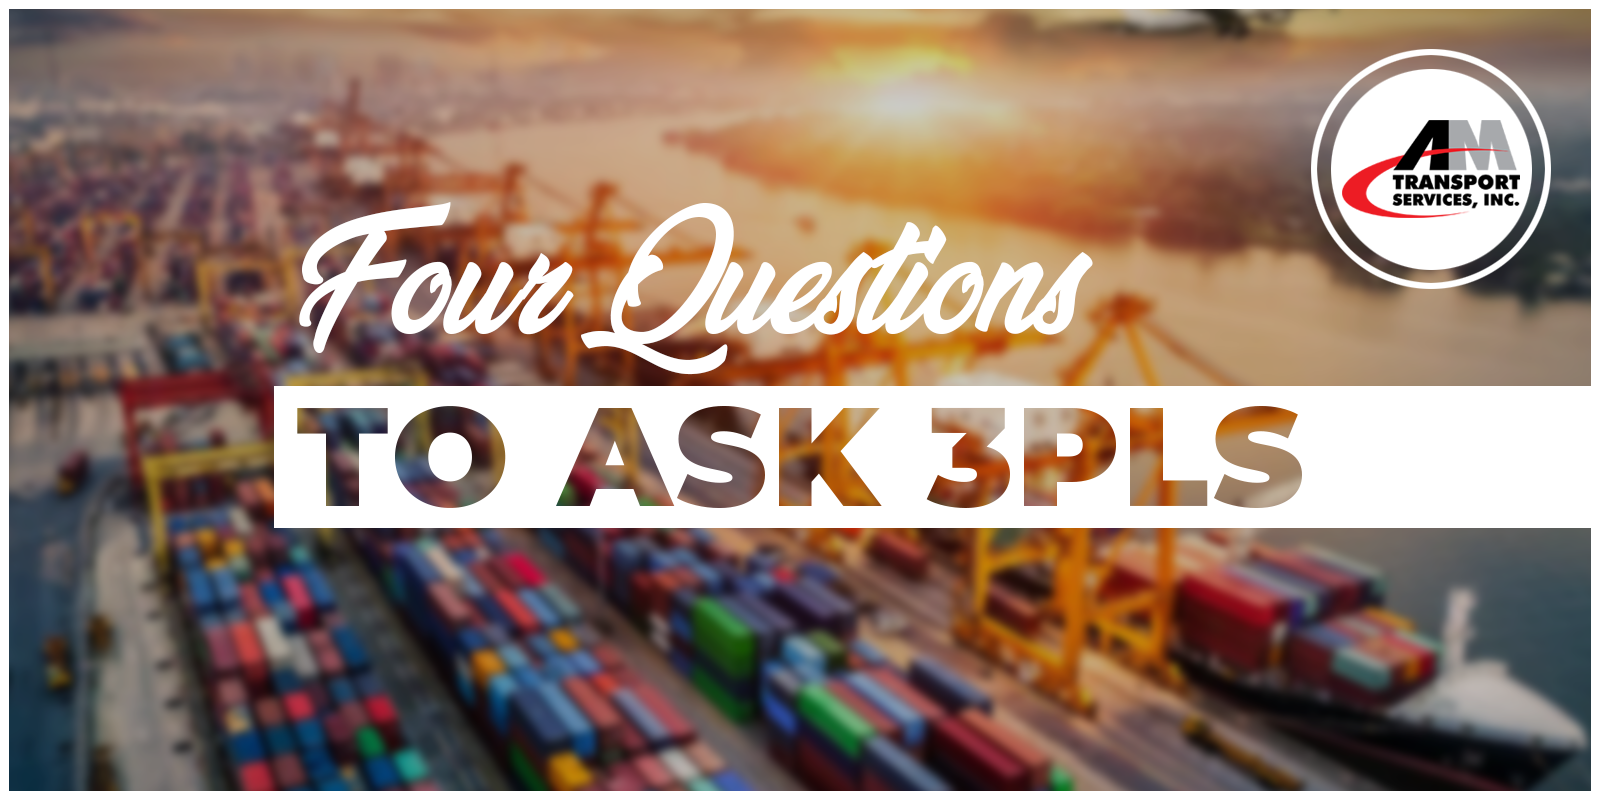 Picture of containers with text--Four Questions to Ask 3PLs to illustrate the trucking industry.